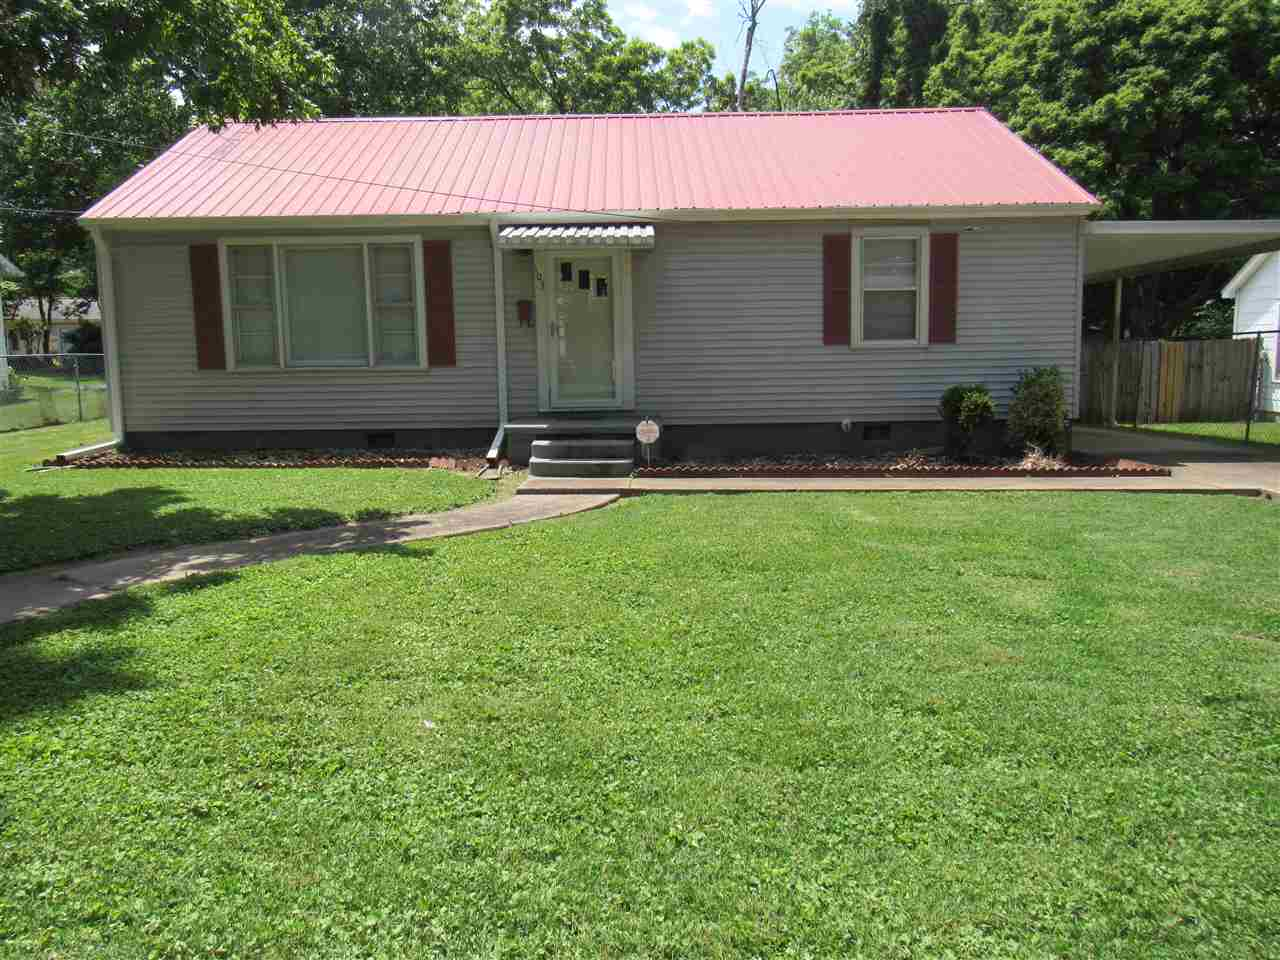 103 N Grayson St, Newbern, Tennessee 38059, 2 Bedrooms Bedrooms, ,1 BathroomBathrooms,Residential,For Sale,103 N Grayson St,202197